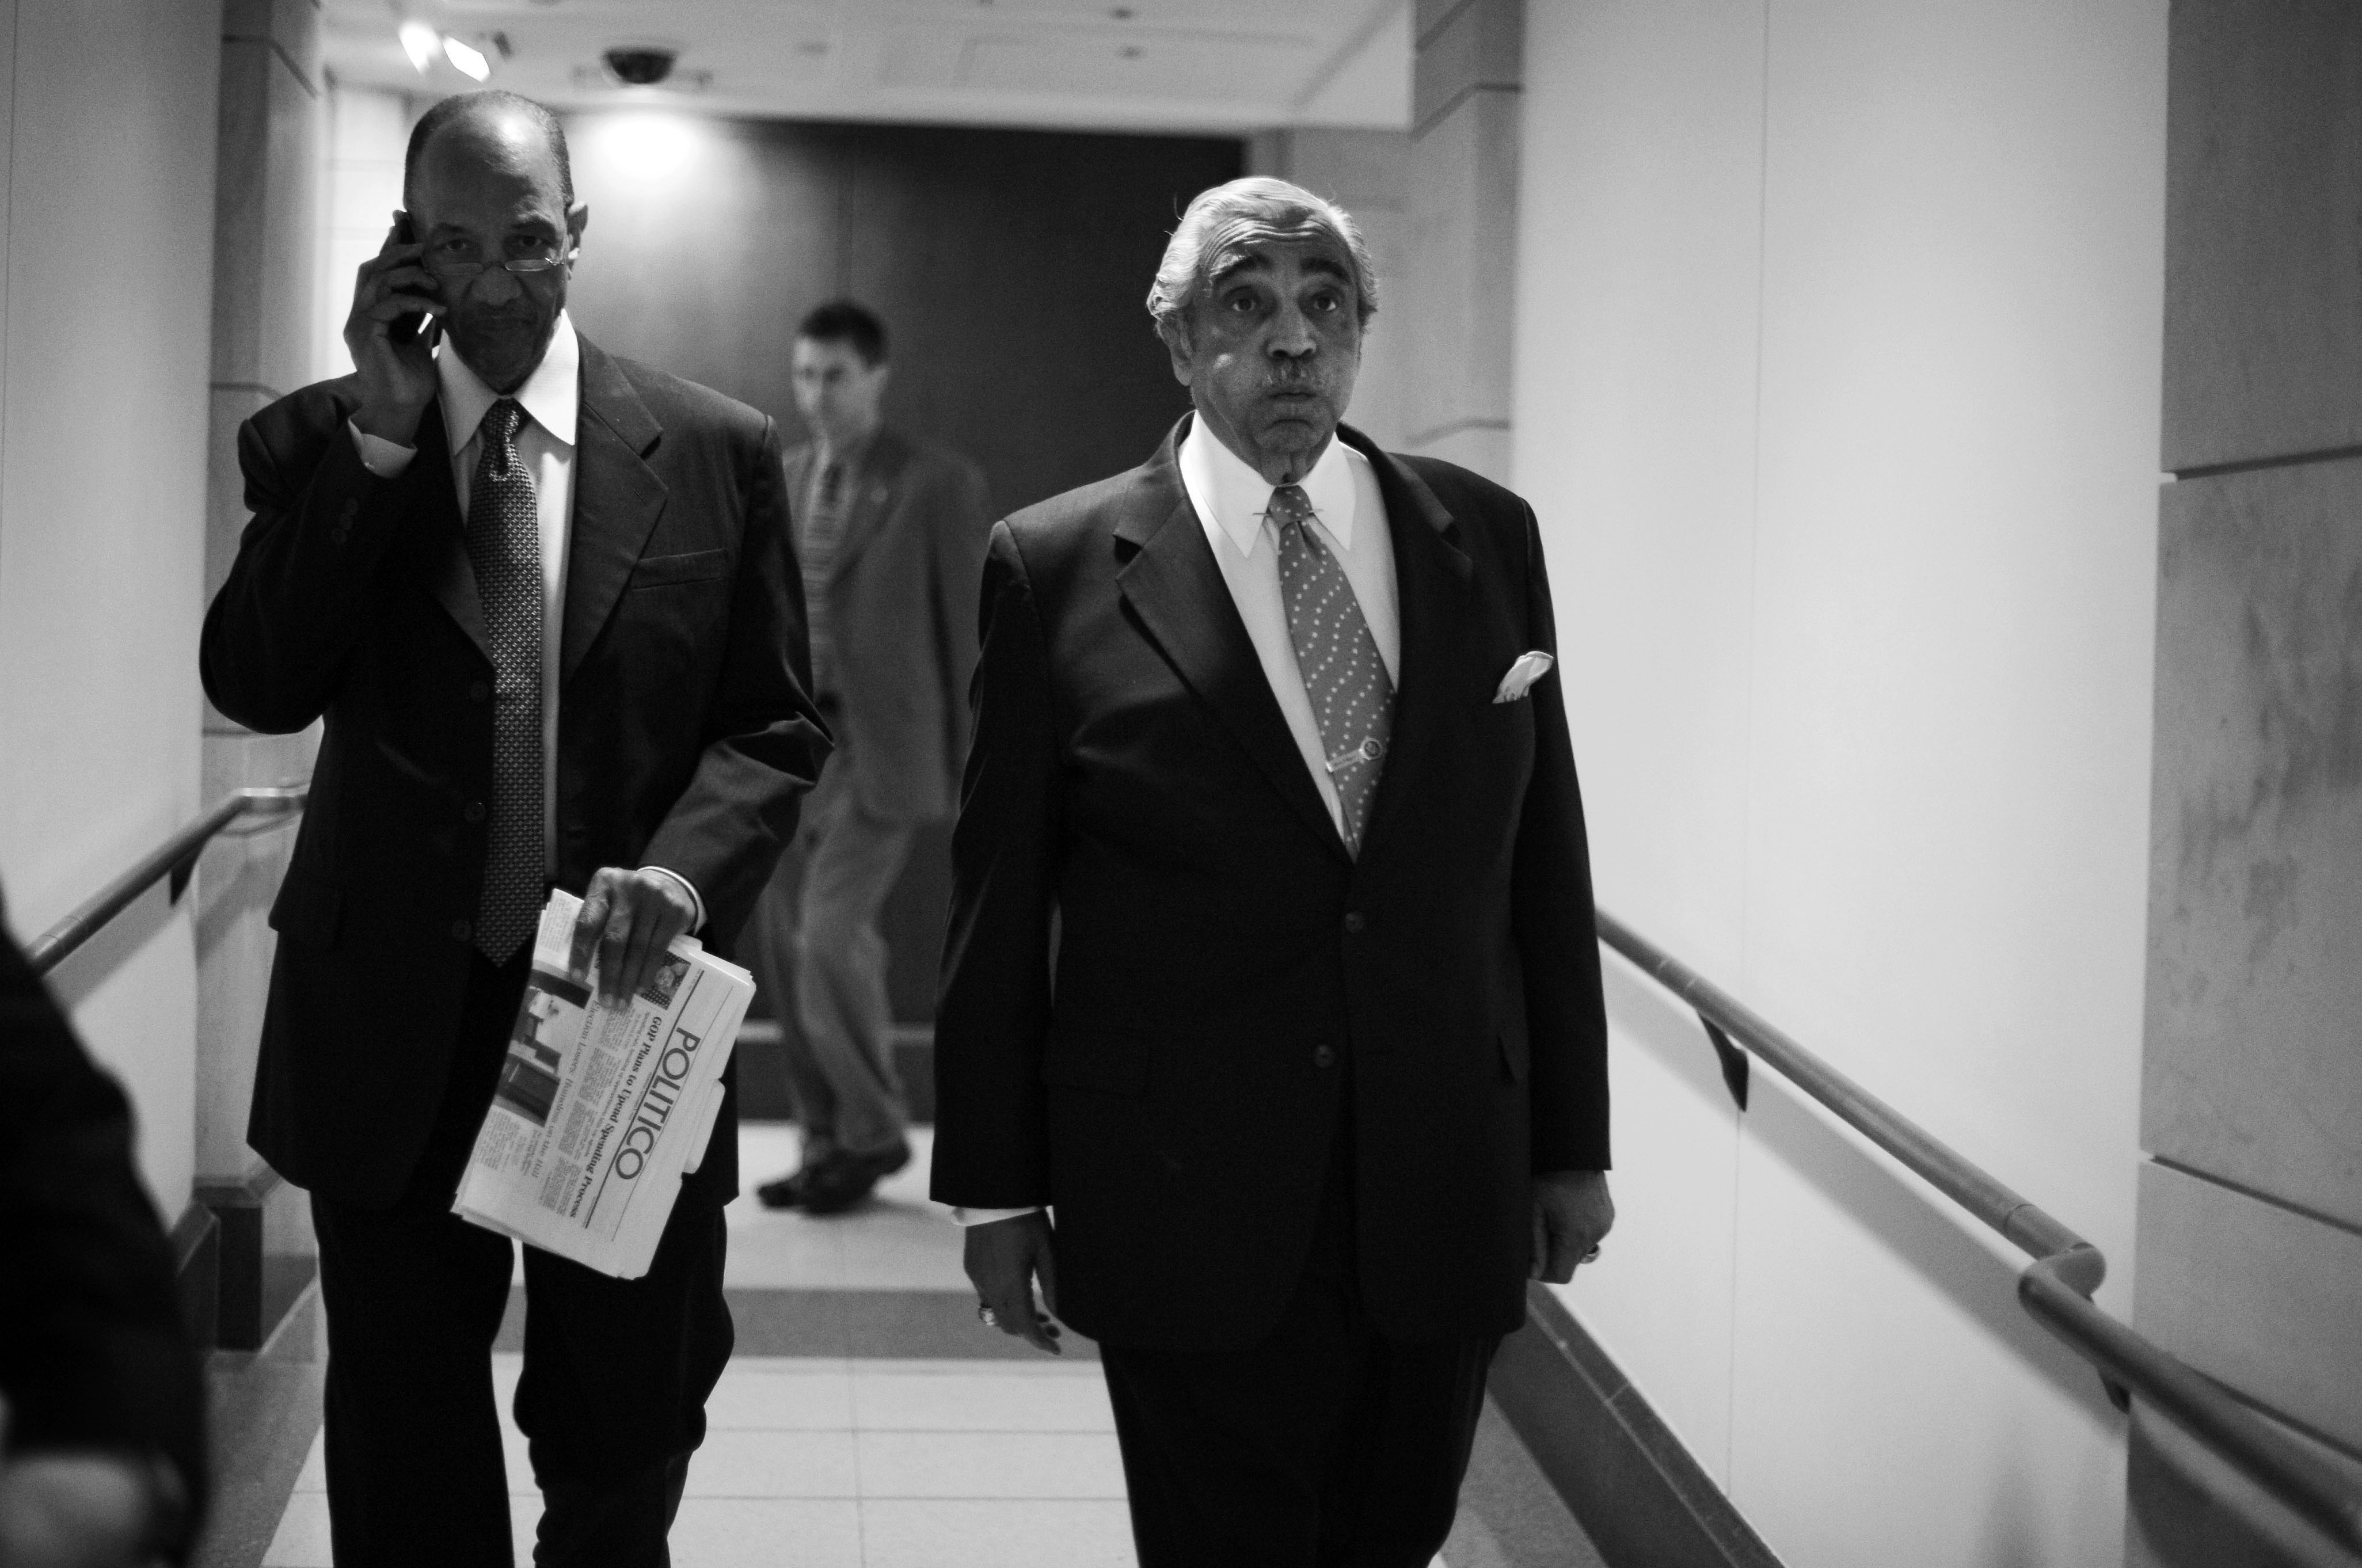 Rangel makes his way to a news conference in the Capitol Visitor Center after he was censured on the House floor for ethics violations in December 2010. (Tom Williams/CQ Roll Call File Photo)